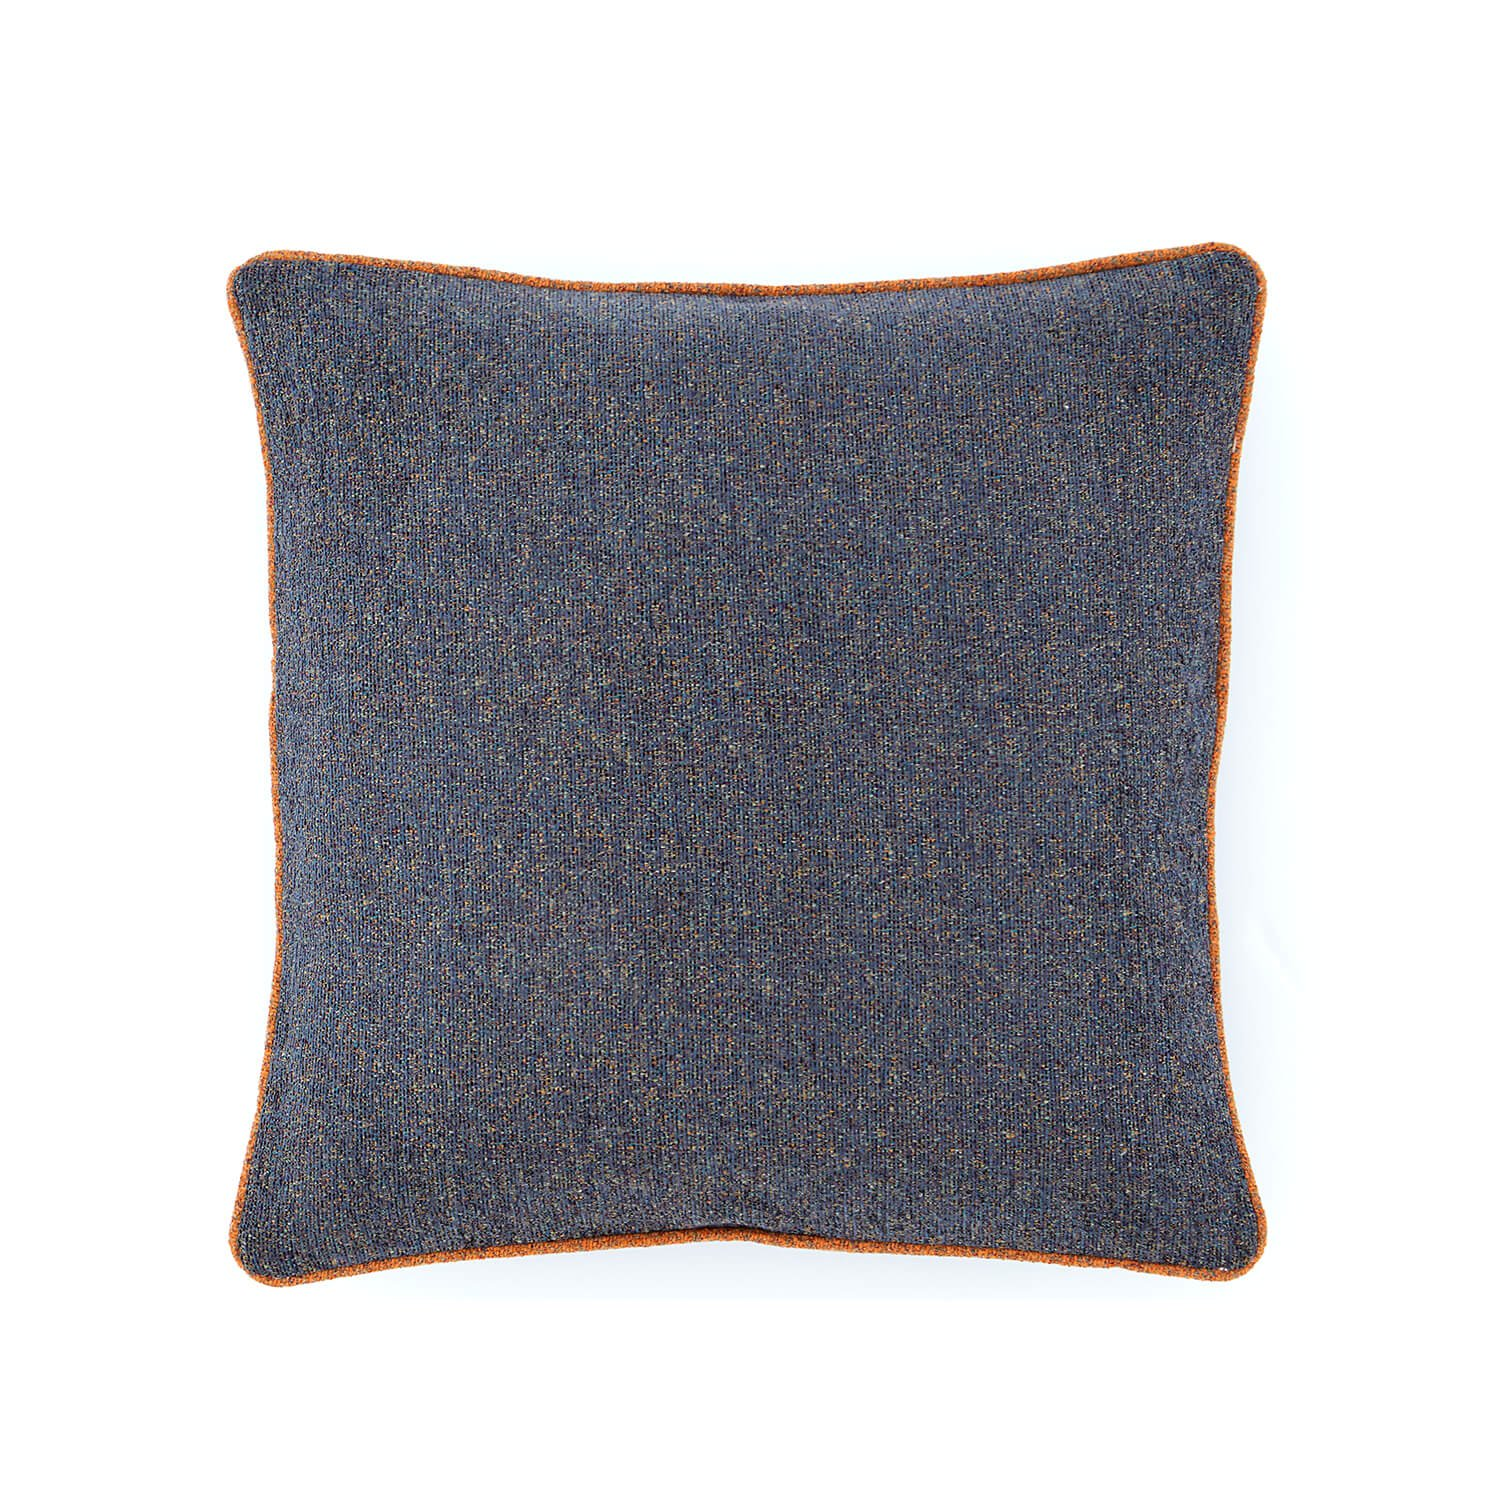 Sweeney Cushion 45x45cm - Petrol